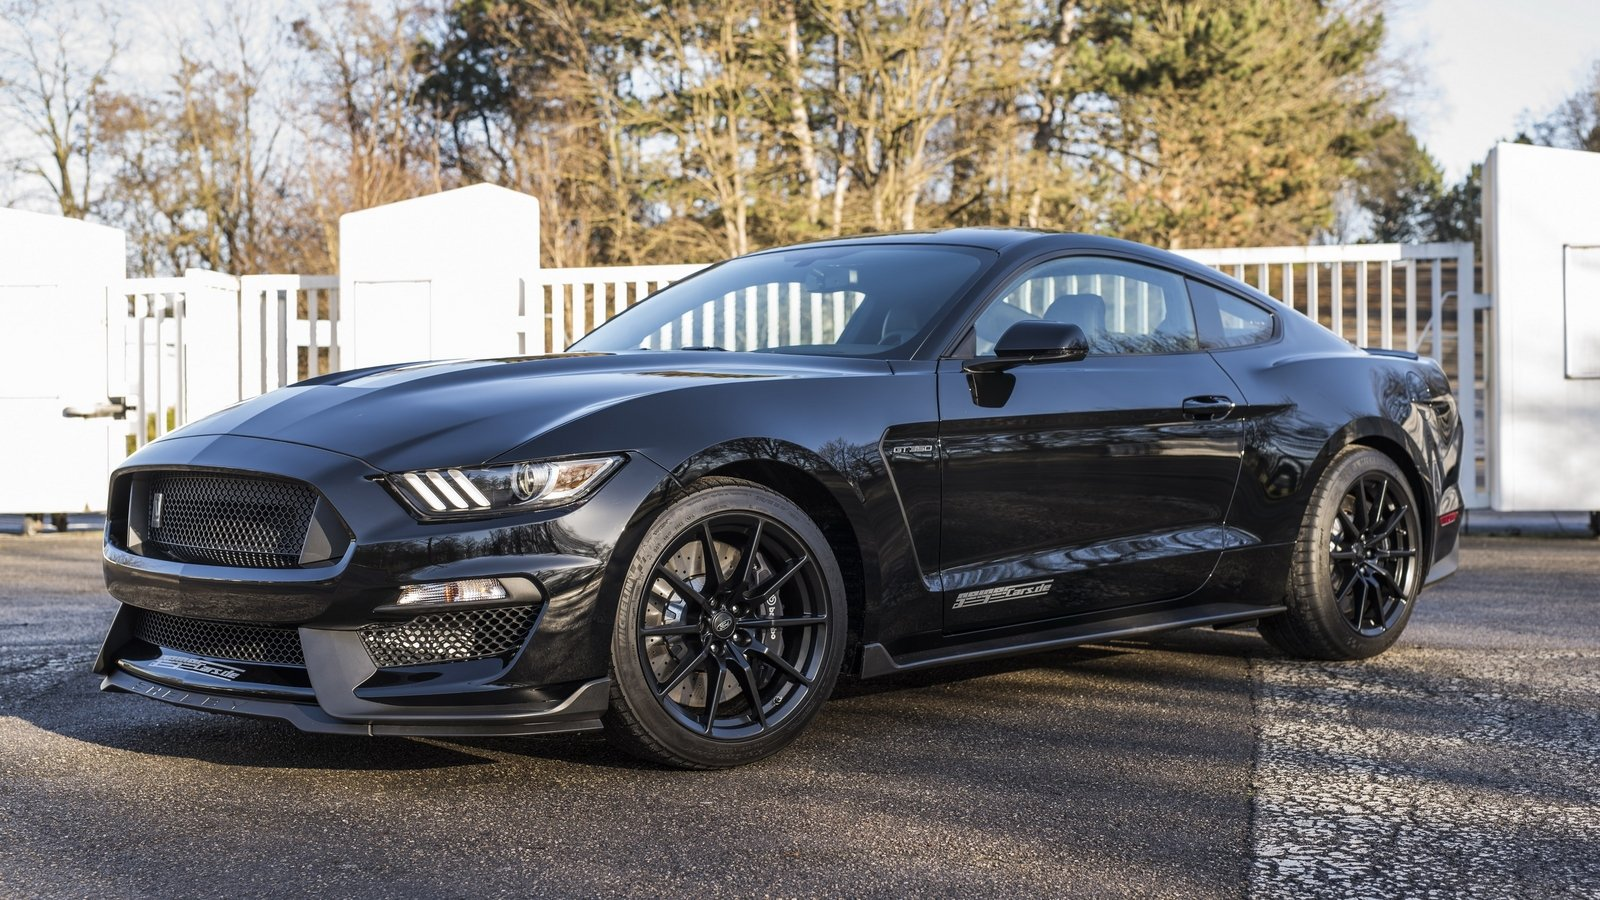 2017 Mustang Shelby Gt350 Black >> geigercars-ford-shelby-gt350-mustang-2 | Tuning